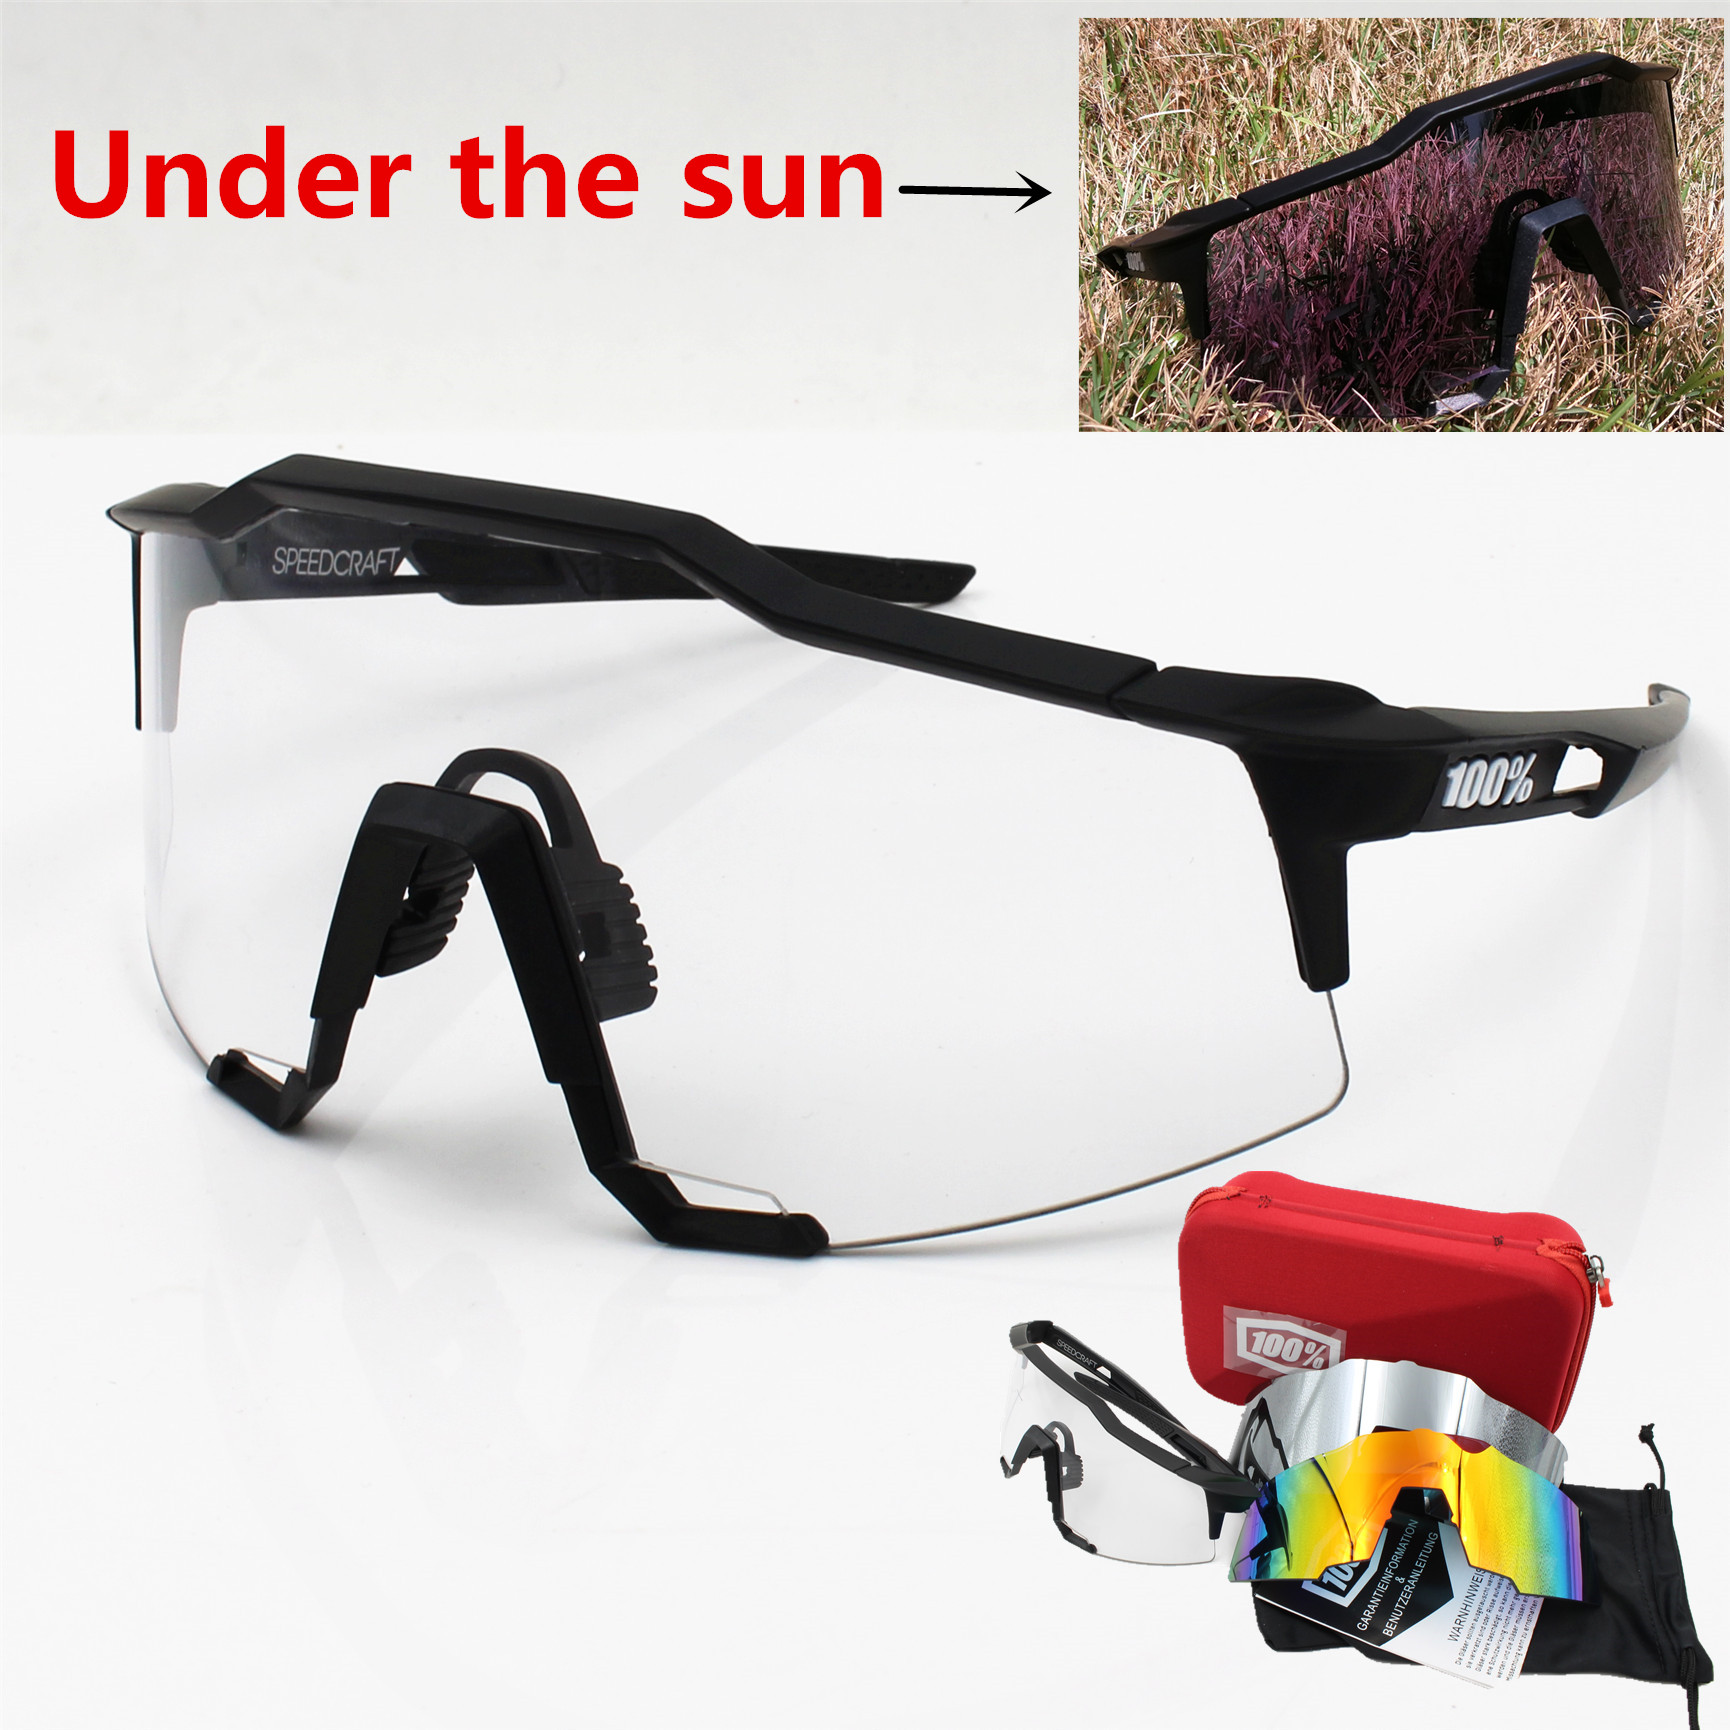 Brand 3 Lens clear lens Outdoor Sports Bicycle Sunglasses bicicleta MTB Cycling Glasses Eyewear new hot fashion unisex women men hipster vintage retro classic half frame glasses clear lens nerd eyewear 4 colors